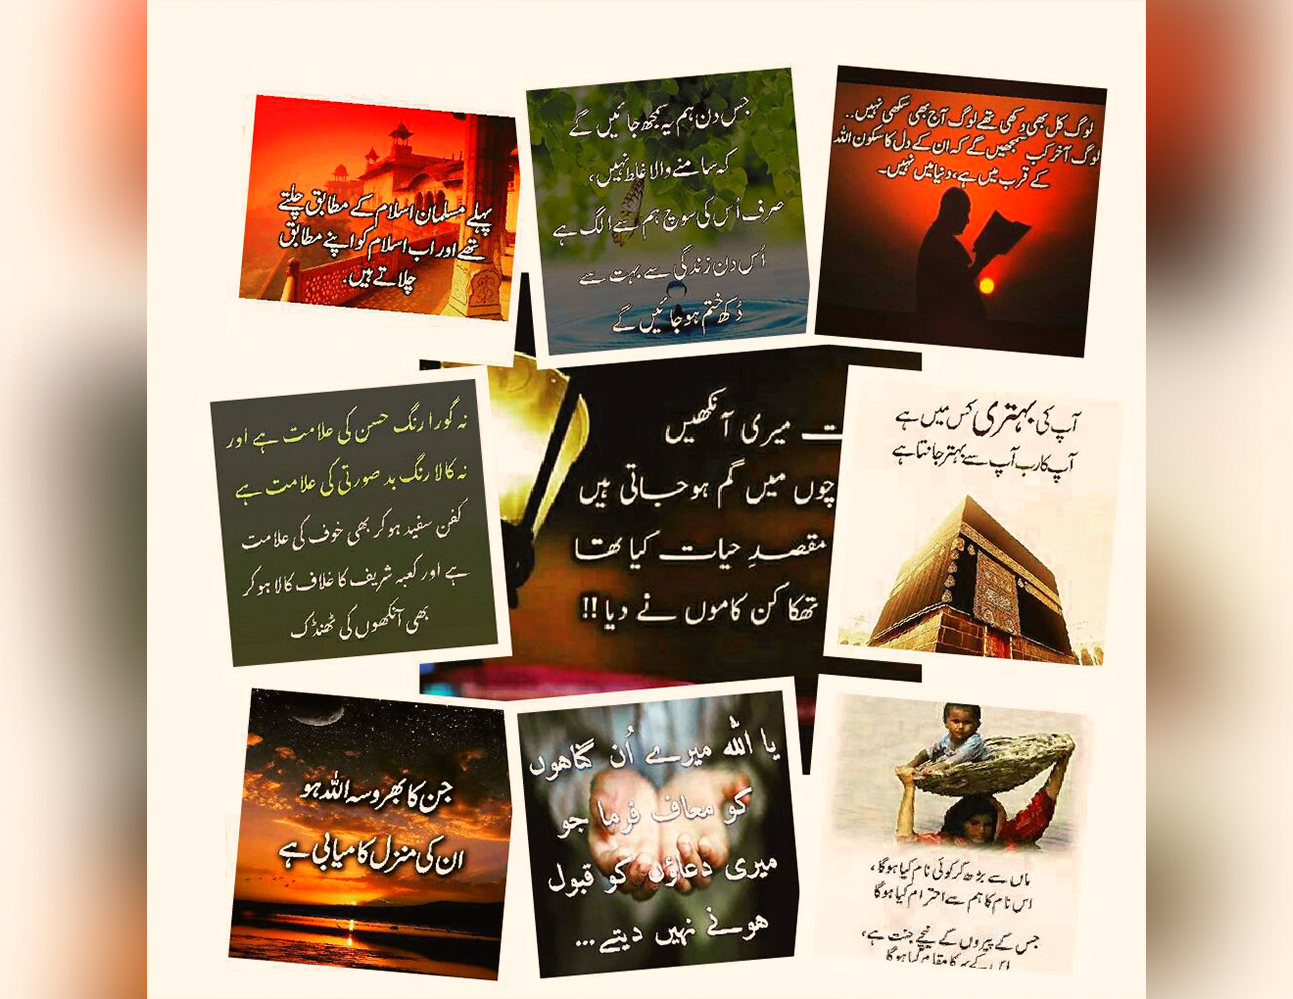 Amazing Urdu Quotes Pics Facebook Urdu Quotes Images Urdu Thoughts